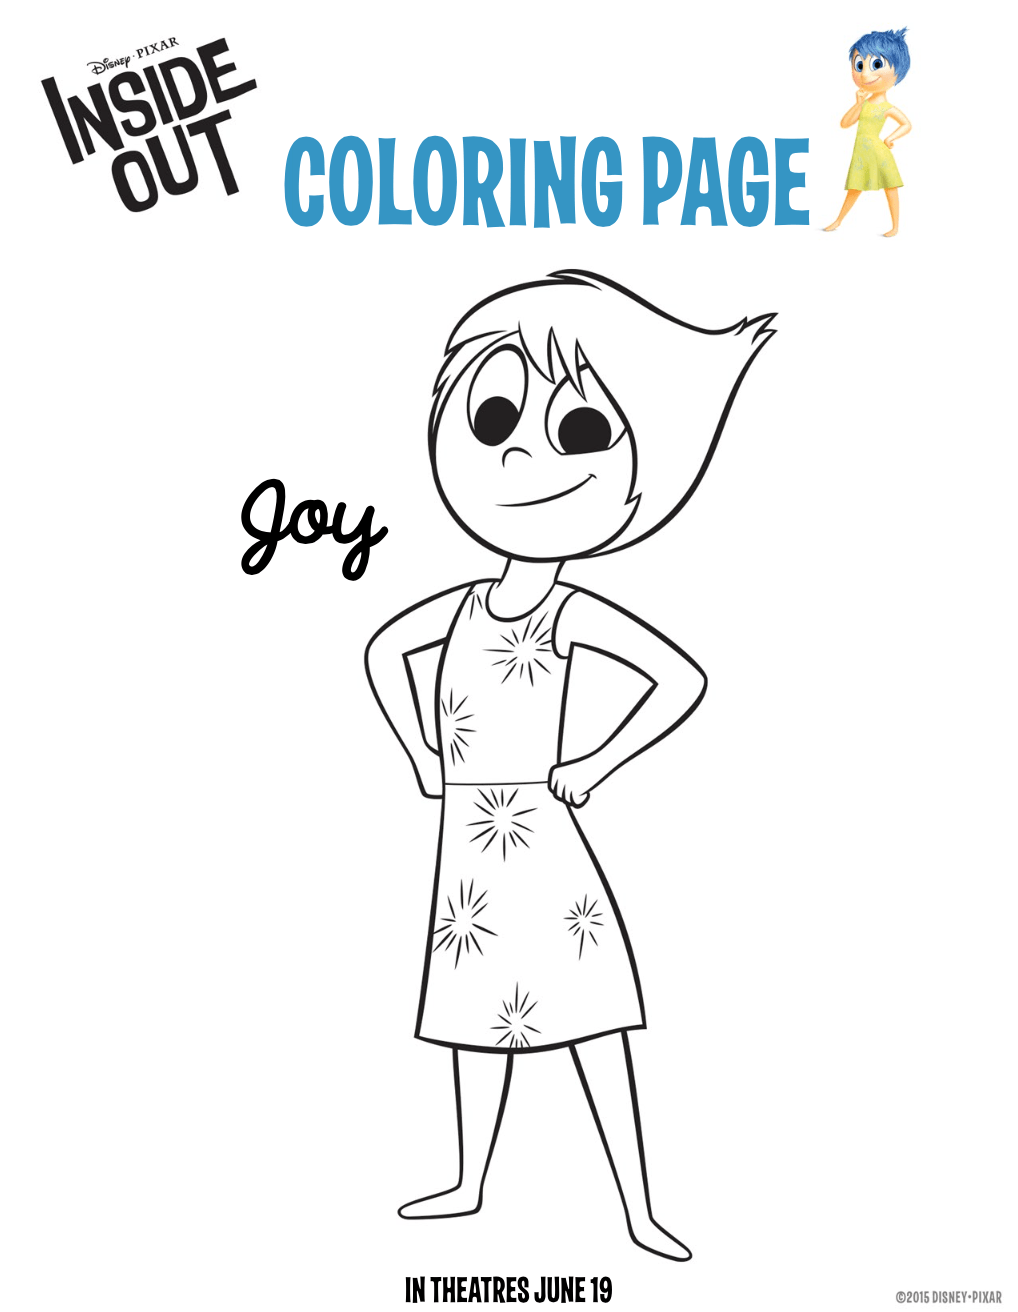 Free coloring pages emotions -  Here Are 6 Free Printable Inside Out Coloring Pages So You Can Begin Getting Familiar With The Characters And The Emotions They Represent